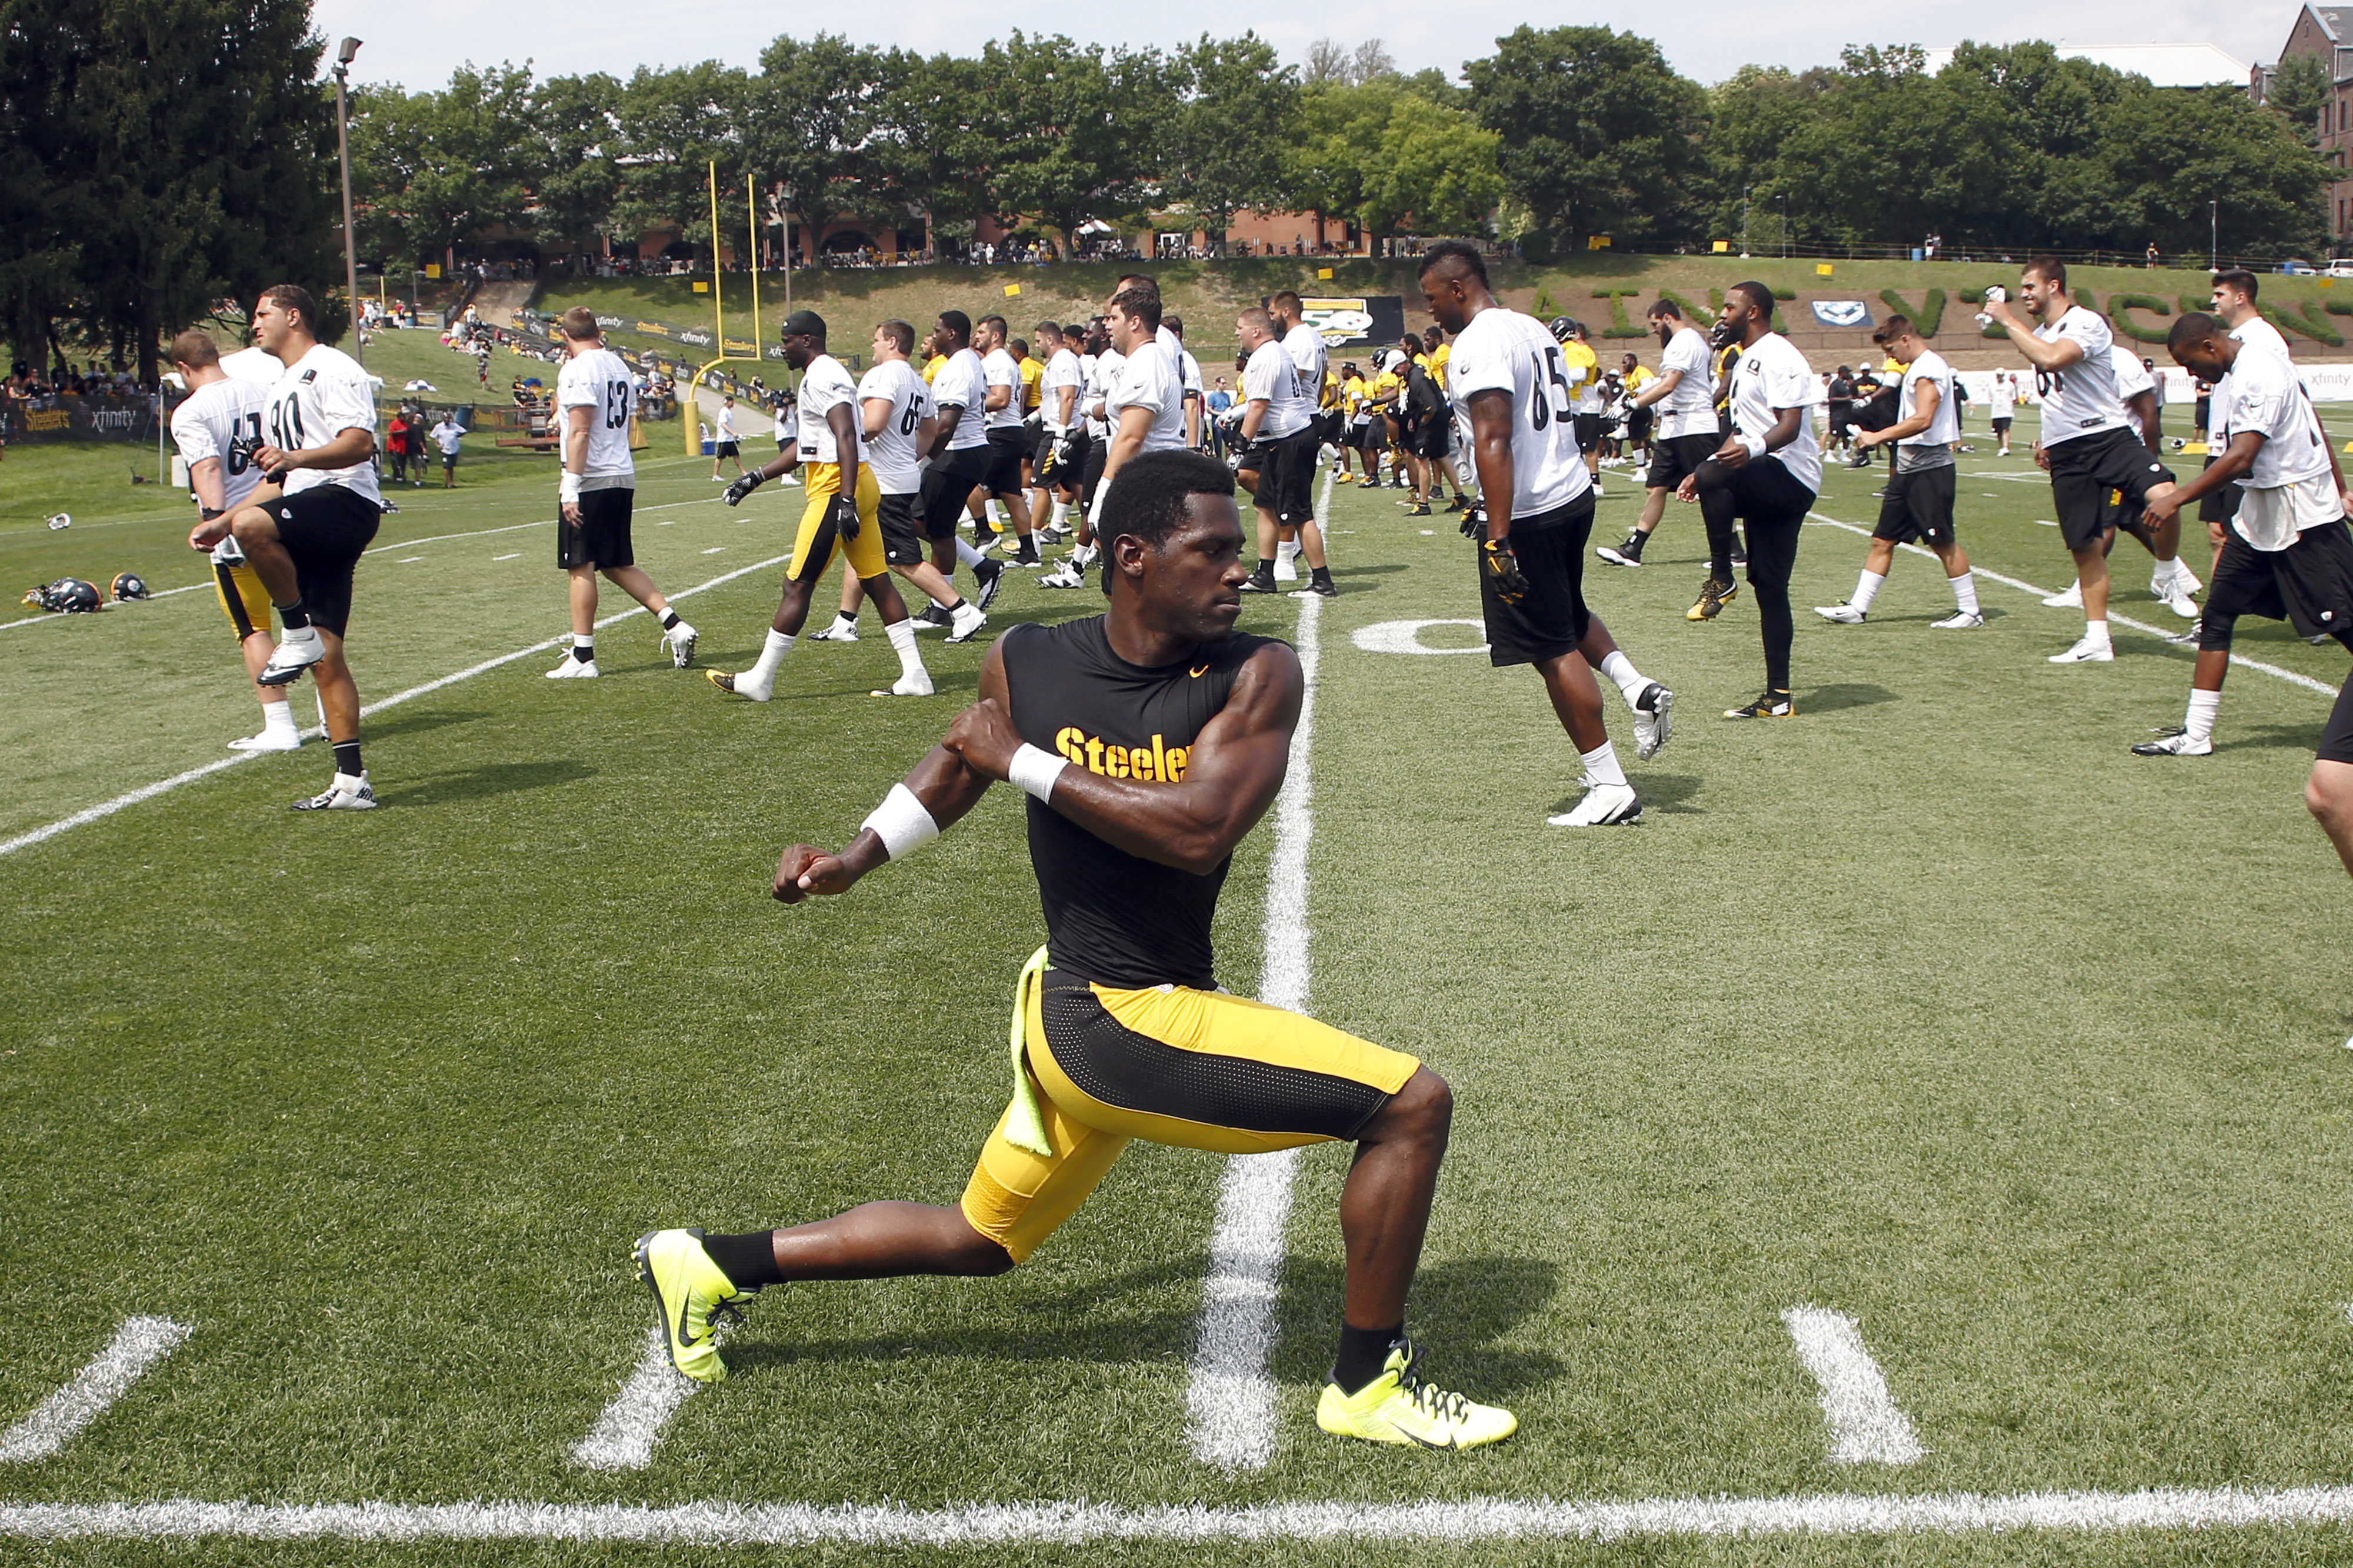 Pittsburgh Steelers wide receiver Antonio Brown (84) twists as he warms up with the team during practice at NFL football training camp in Latrobe, Pa. on Sunday, July 26, 2015 . (AP Photo/Keith Srakocic)